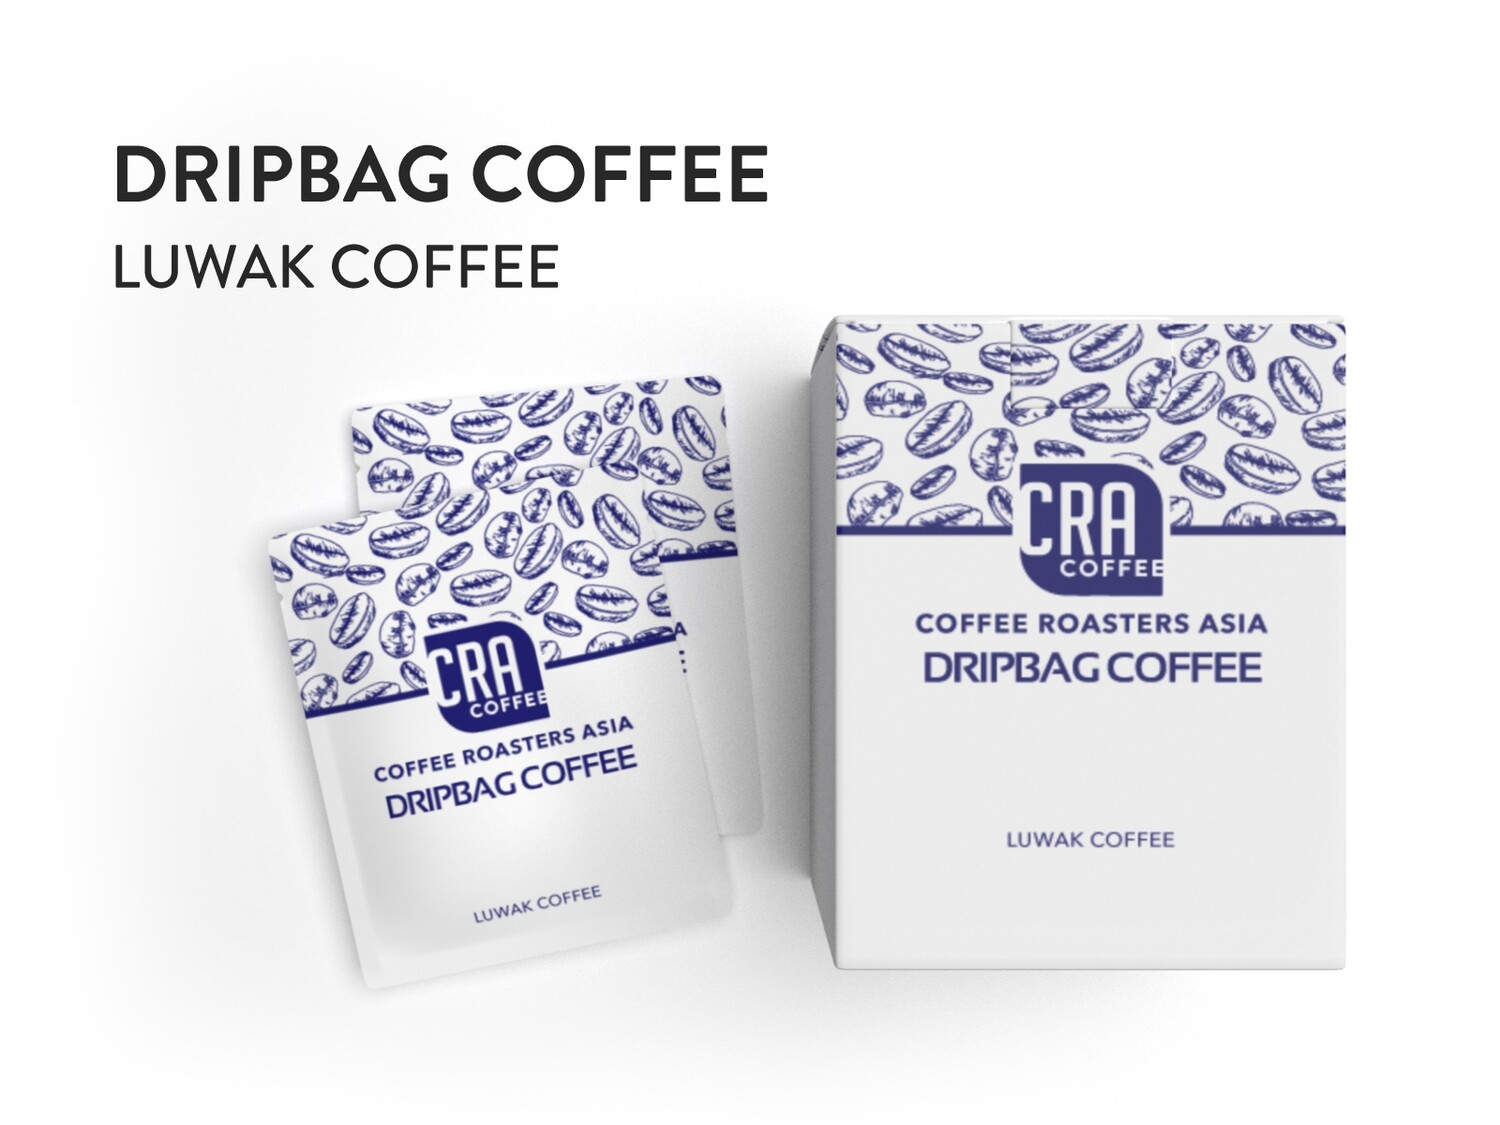 Drip Bag Coffee - Luwak Coffee 10 bags (medium dark roast)